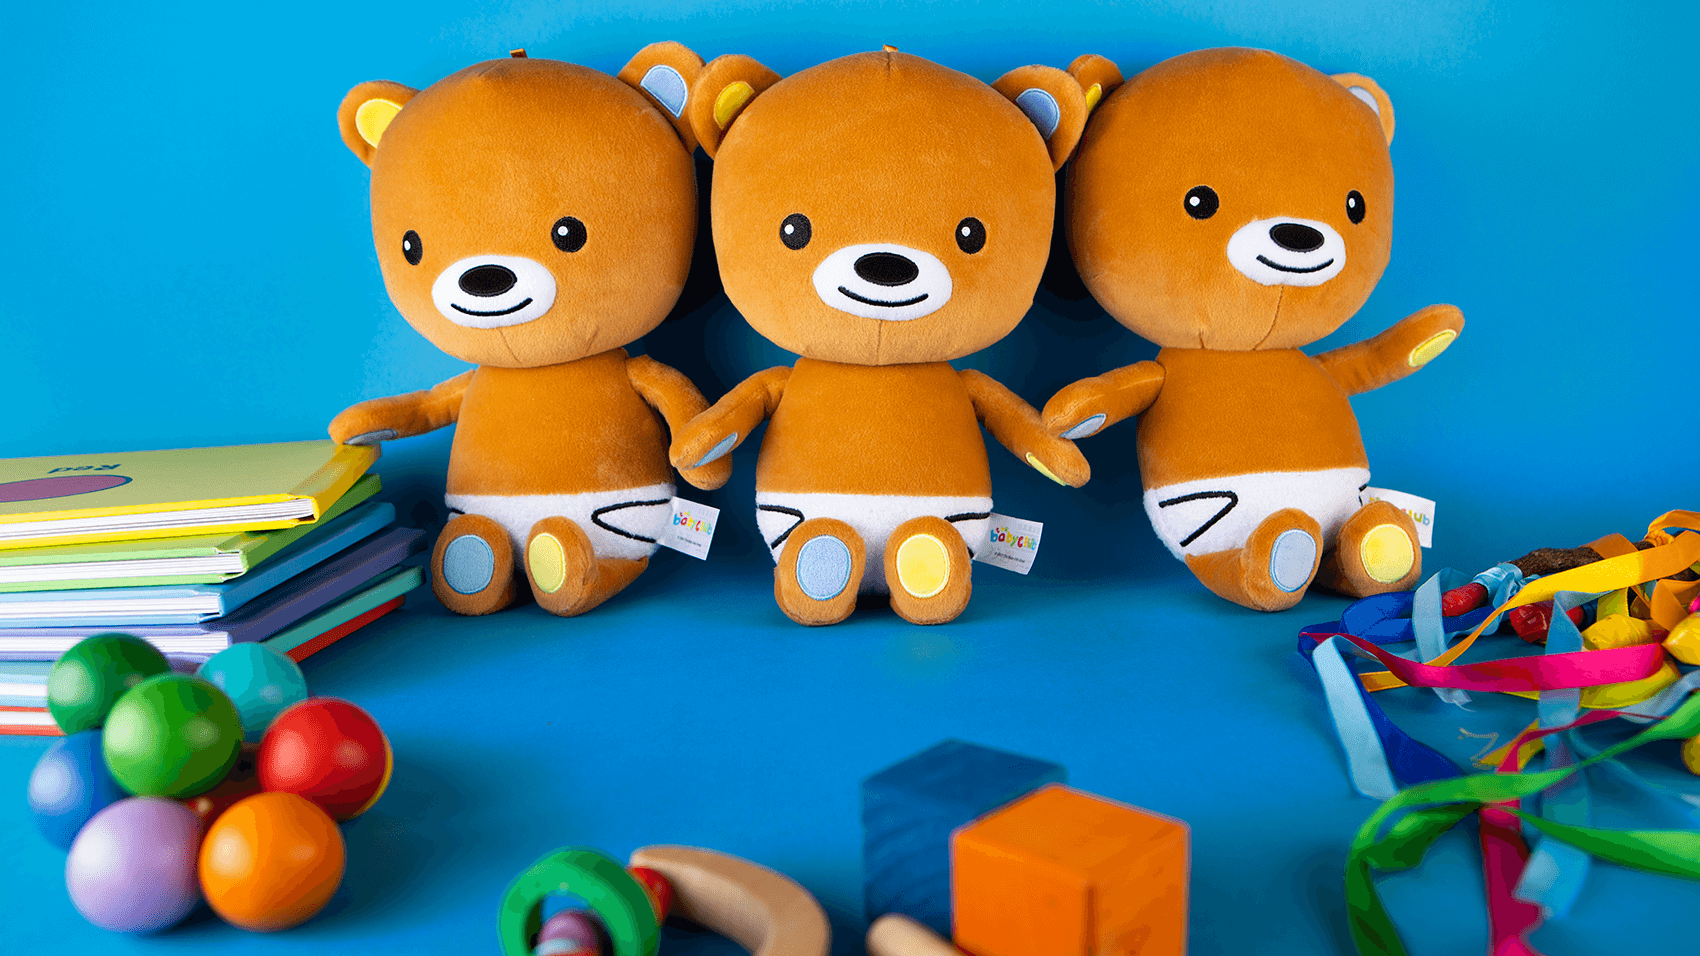 Baby Bear is now available as a plush soft toy character!